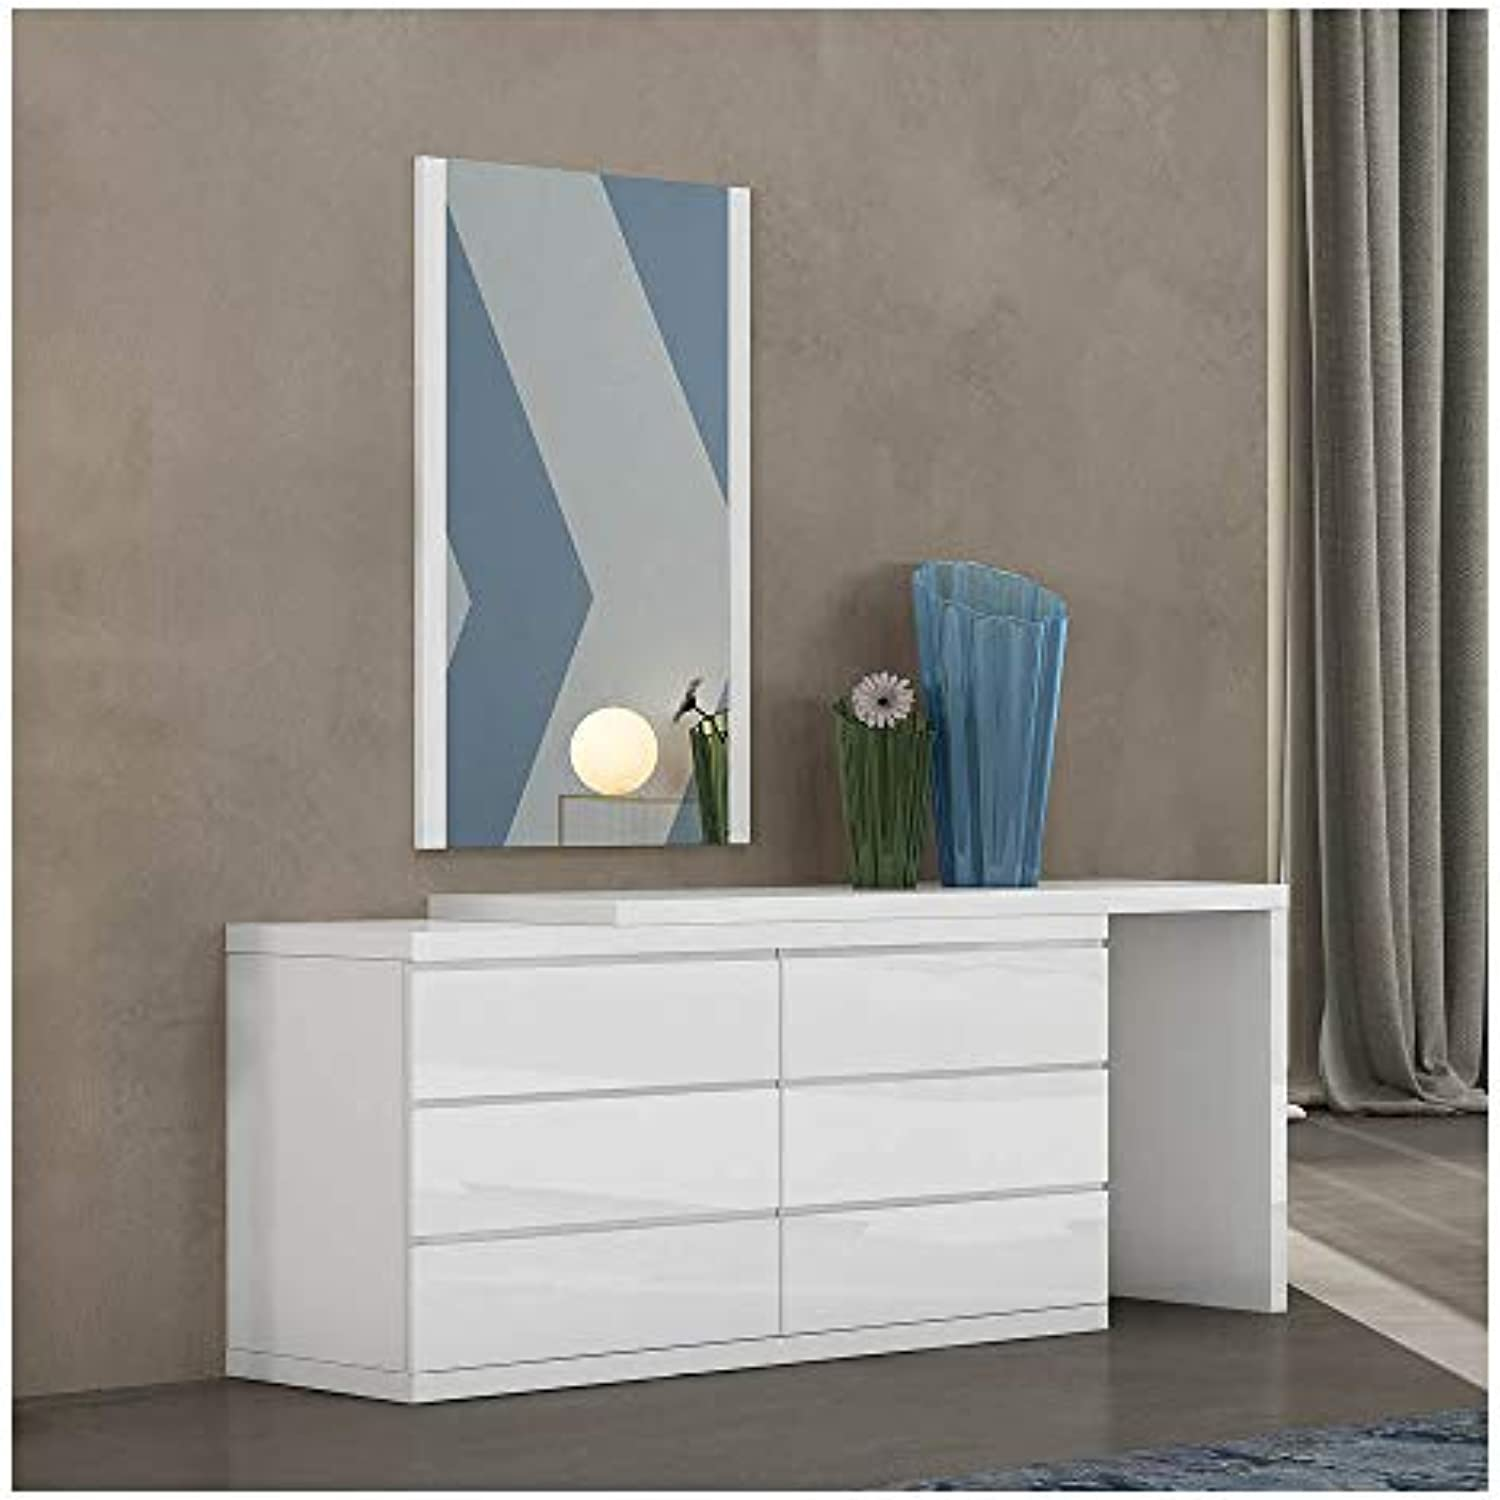 Whiteline Contemporary Modern Anna/Eddy High Gloss Extension Dresser, Single/Double, White (Extension Only)